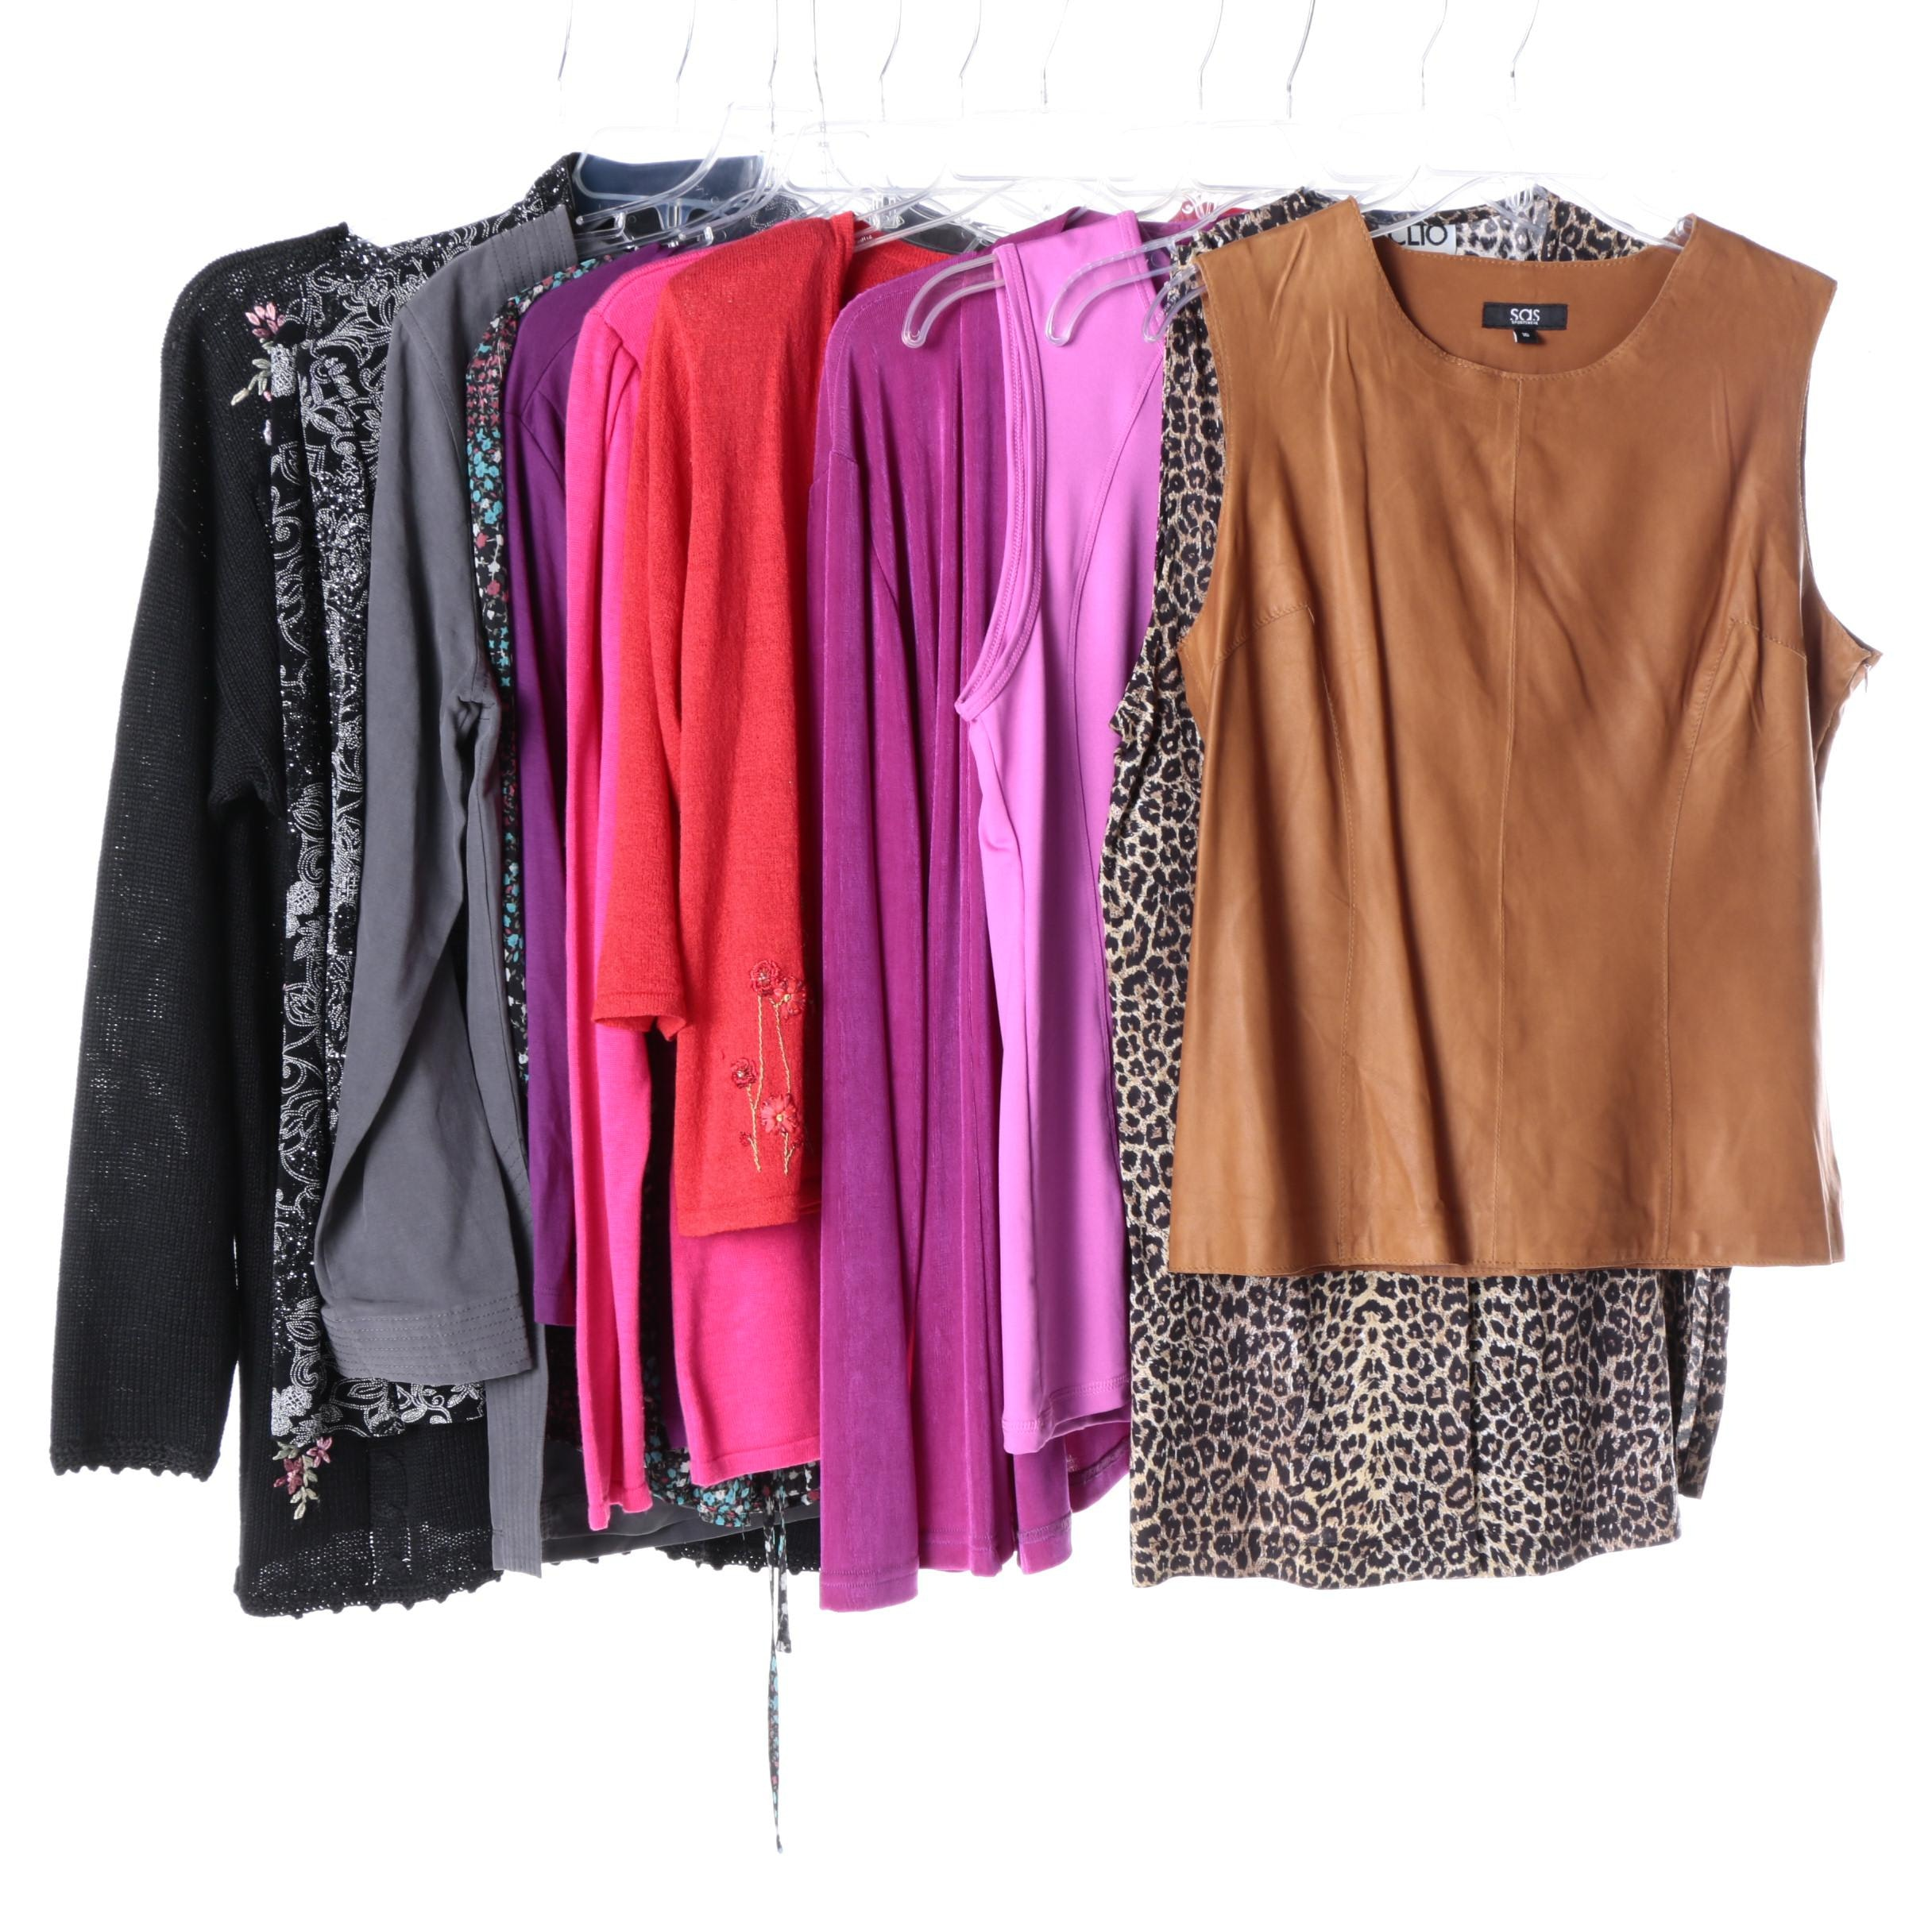 Women's Clothing Including Cable & Gauge